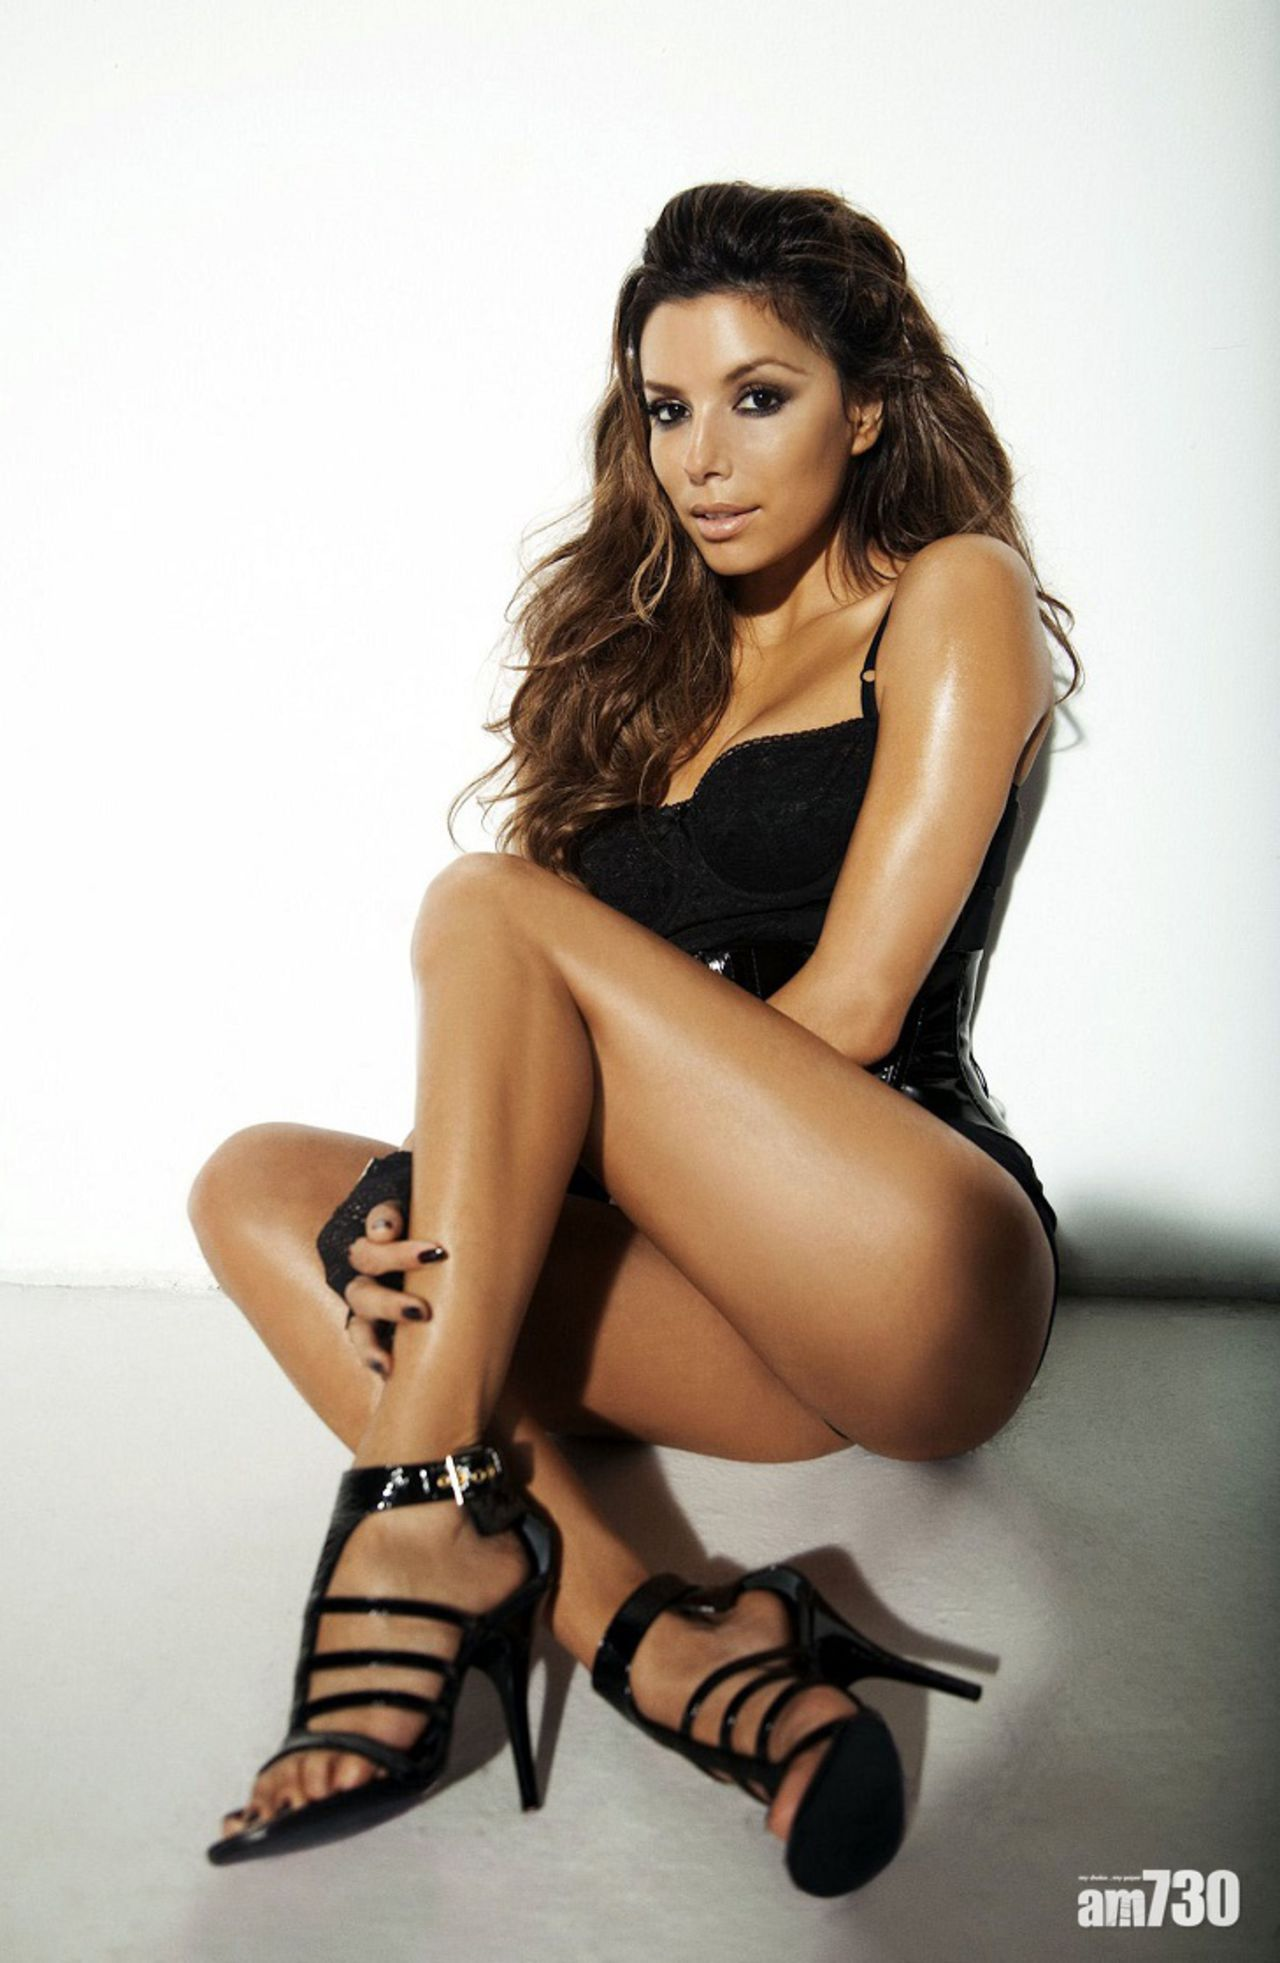 70 Hot Pictures Of Eva Longoria Will Make You Insane For This